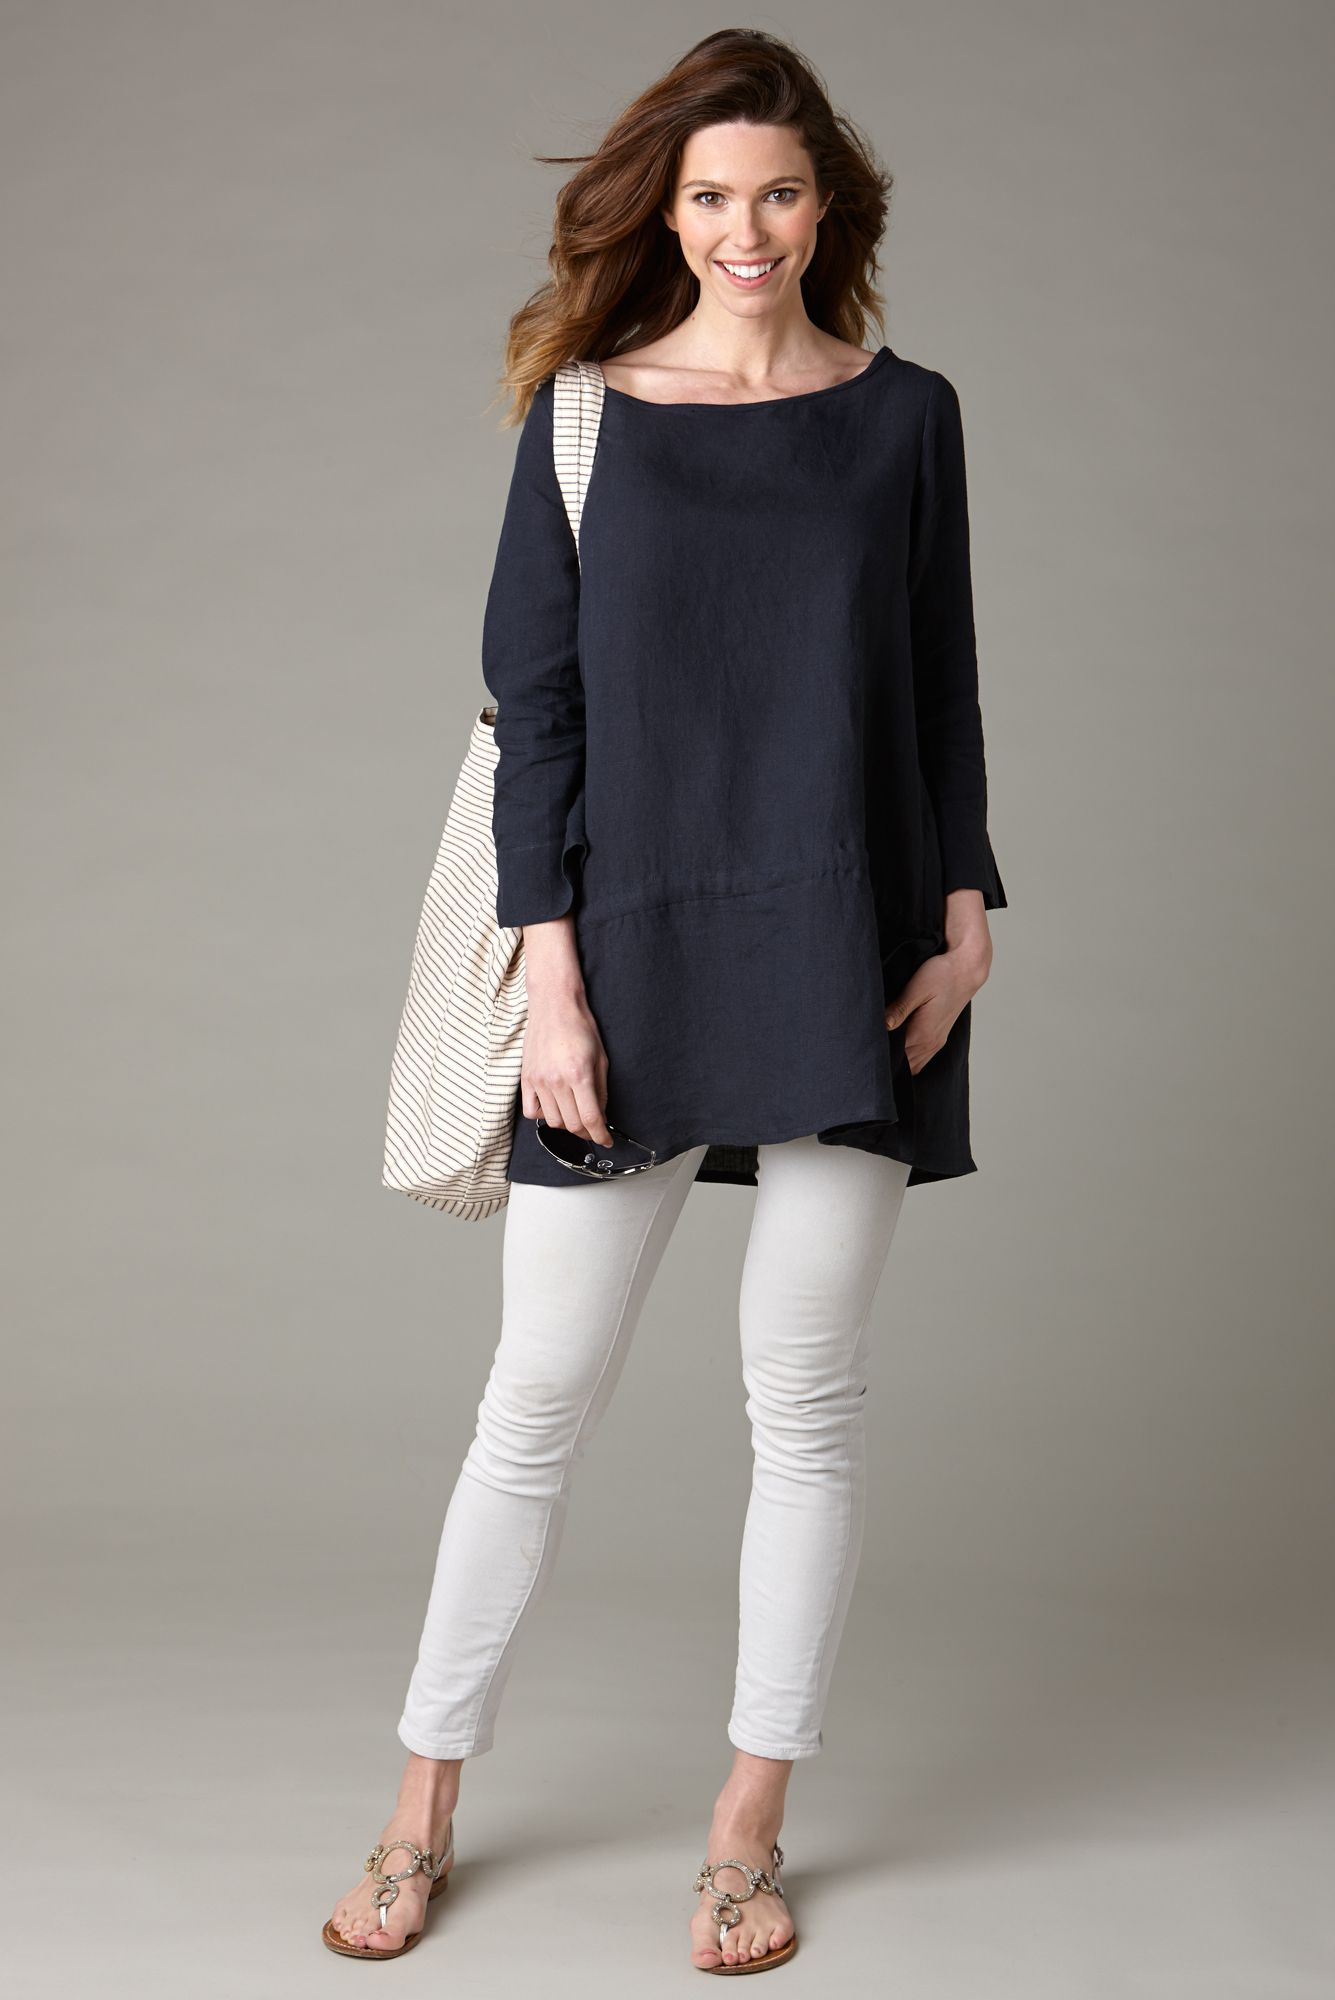 Tunic Dress and Leggings, The Ultimate Combination   Pinterest